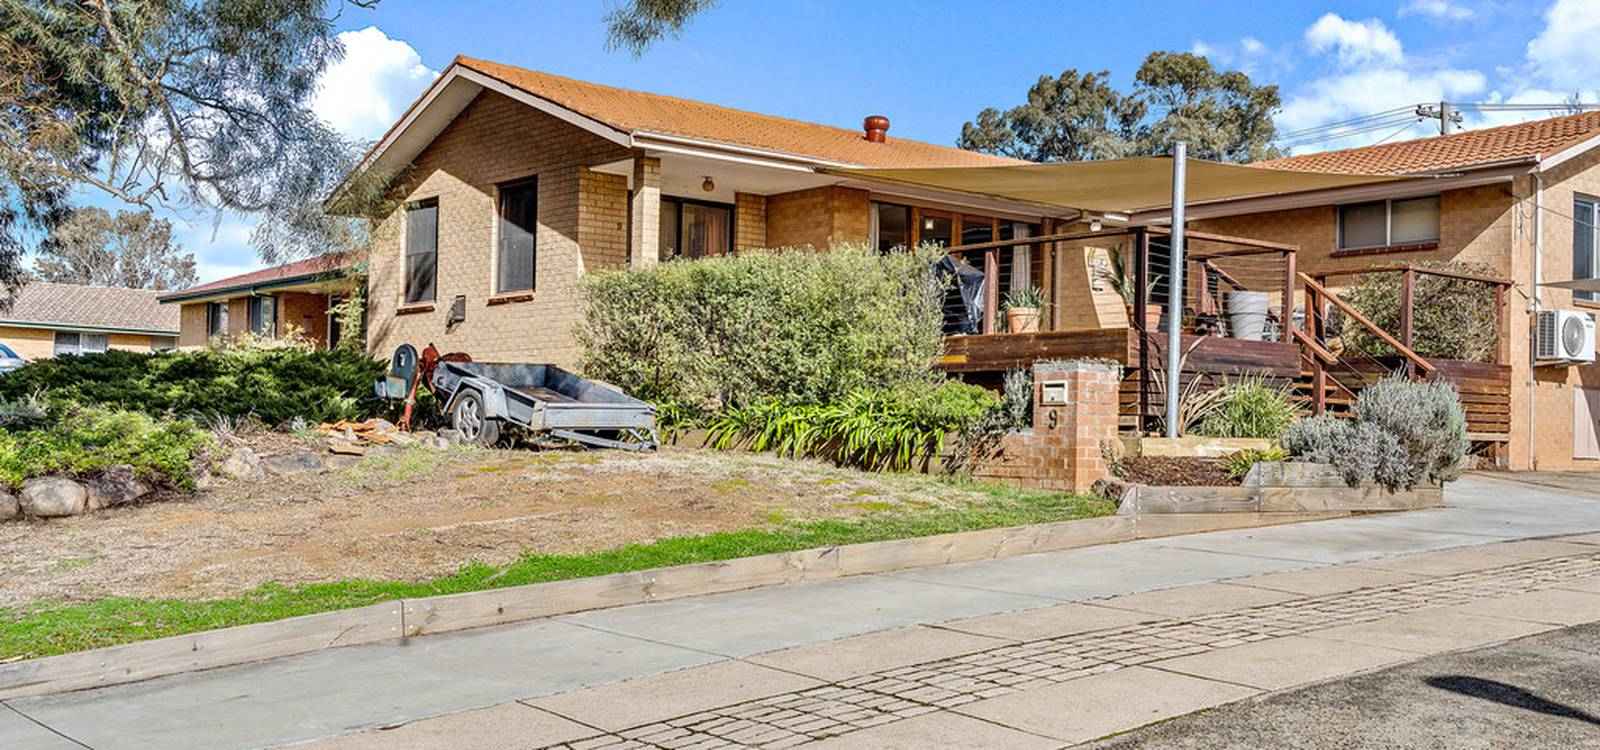 9 Foreman Place MACGREGOR, ACT 2615 - photo 1